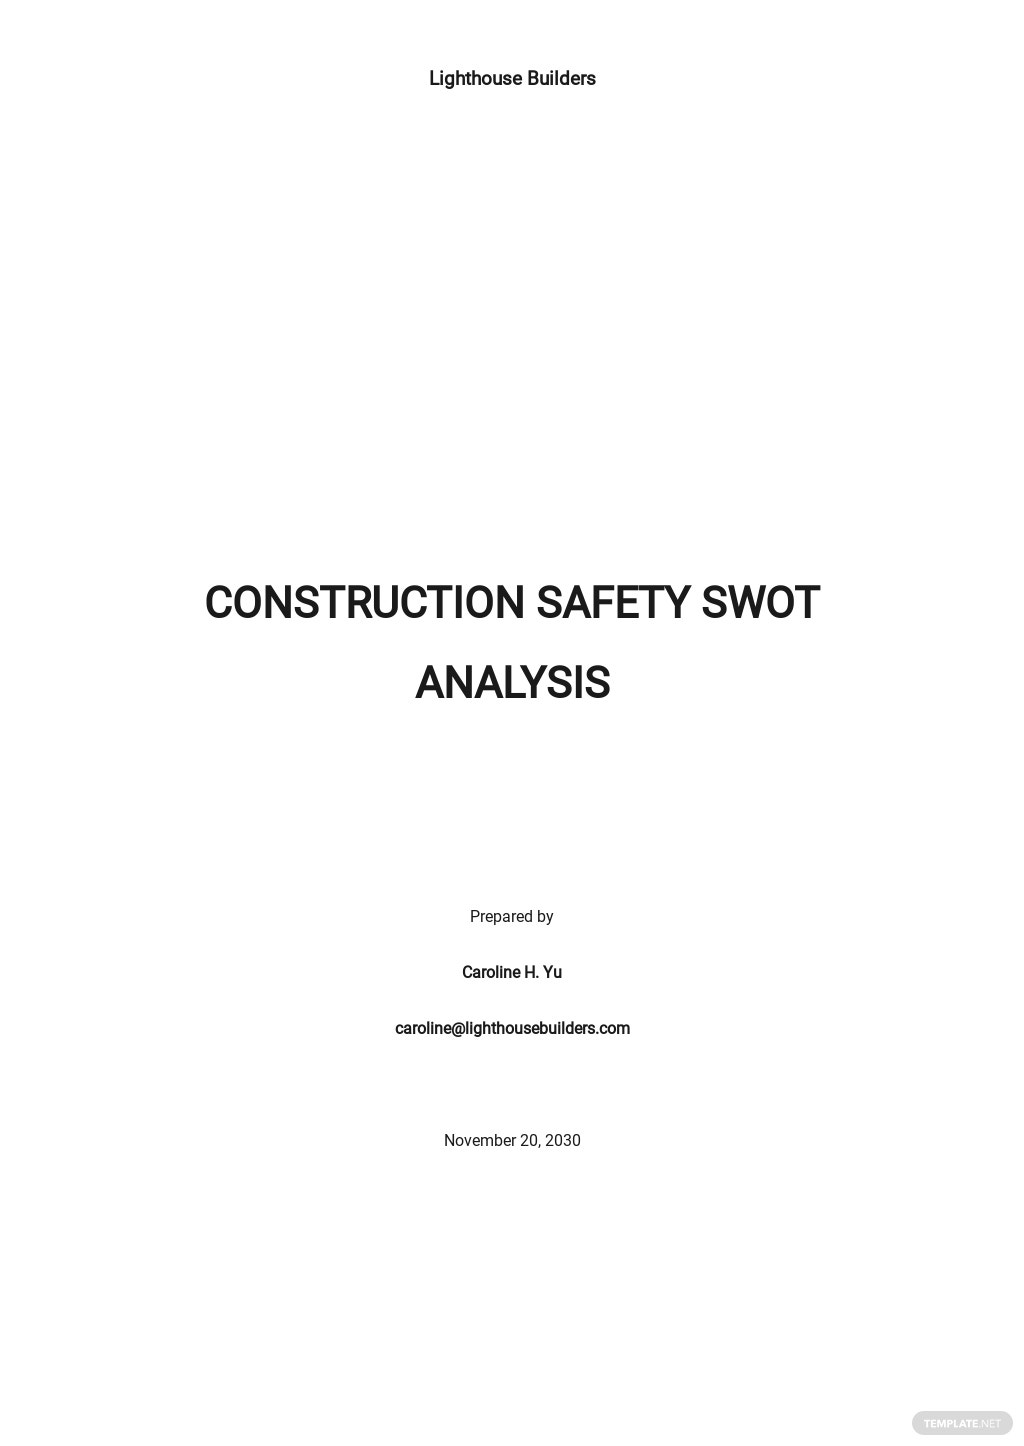 Construction Safety SWOT Analysis Template